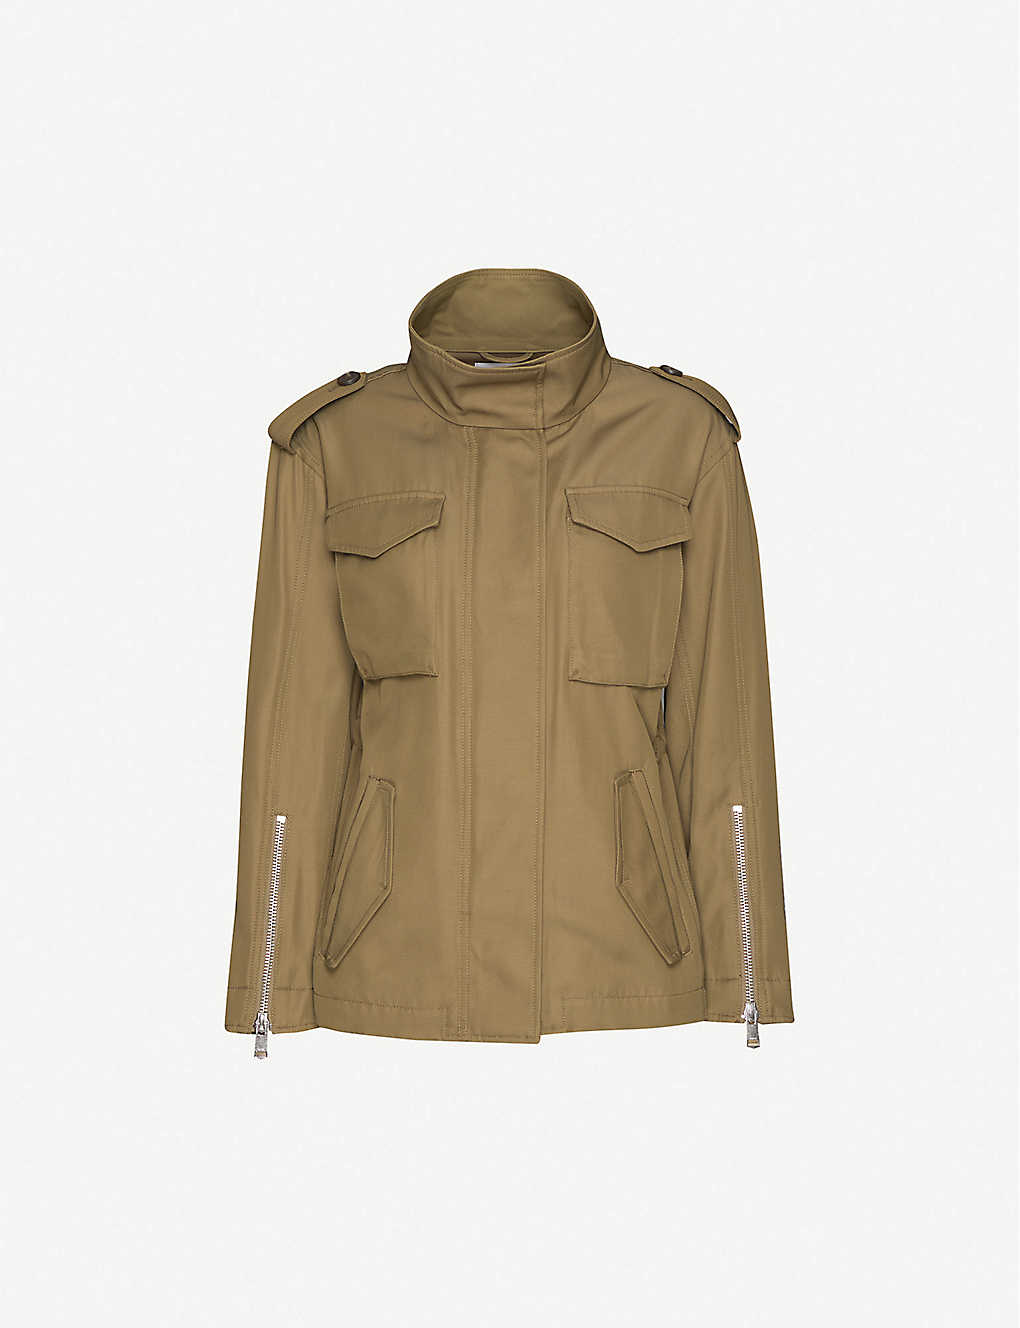 REISS: Nia single-breasted twill jacket